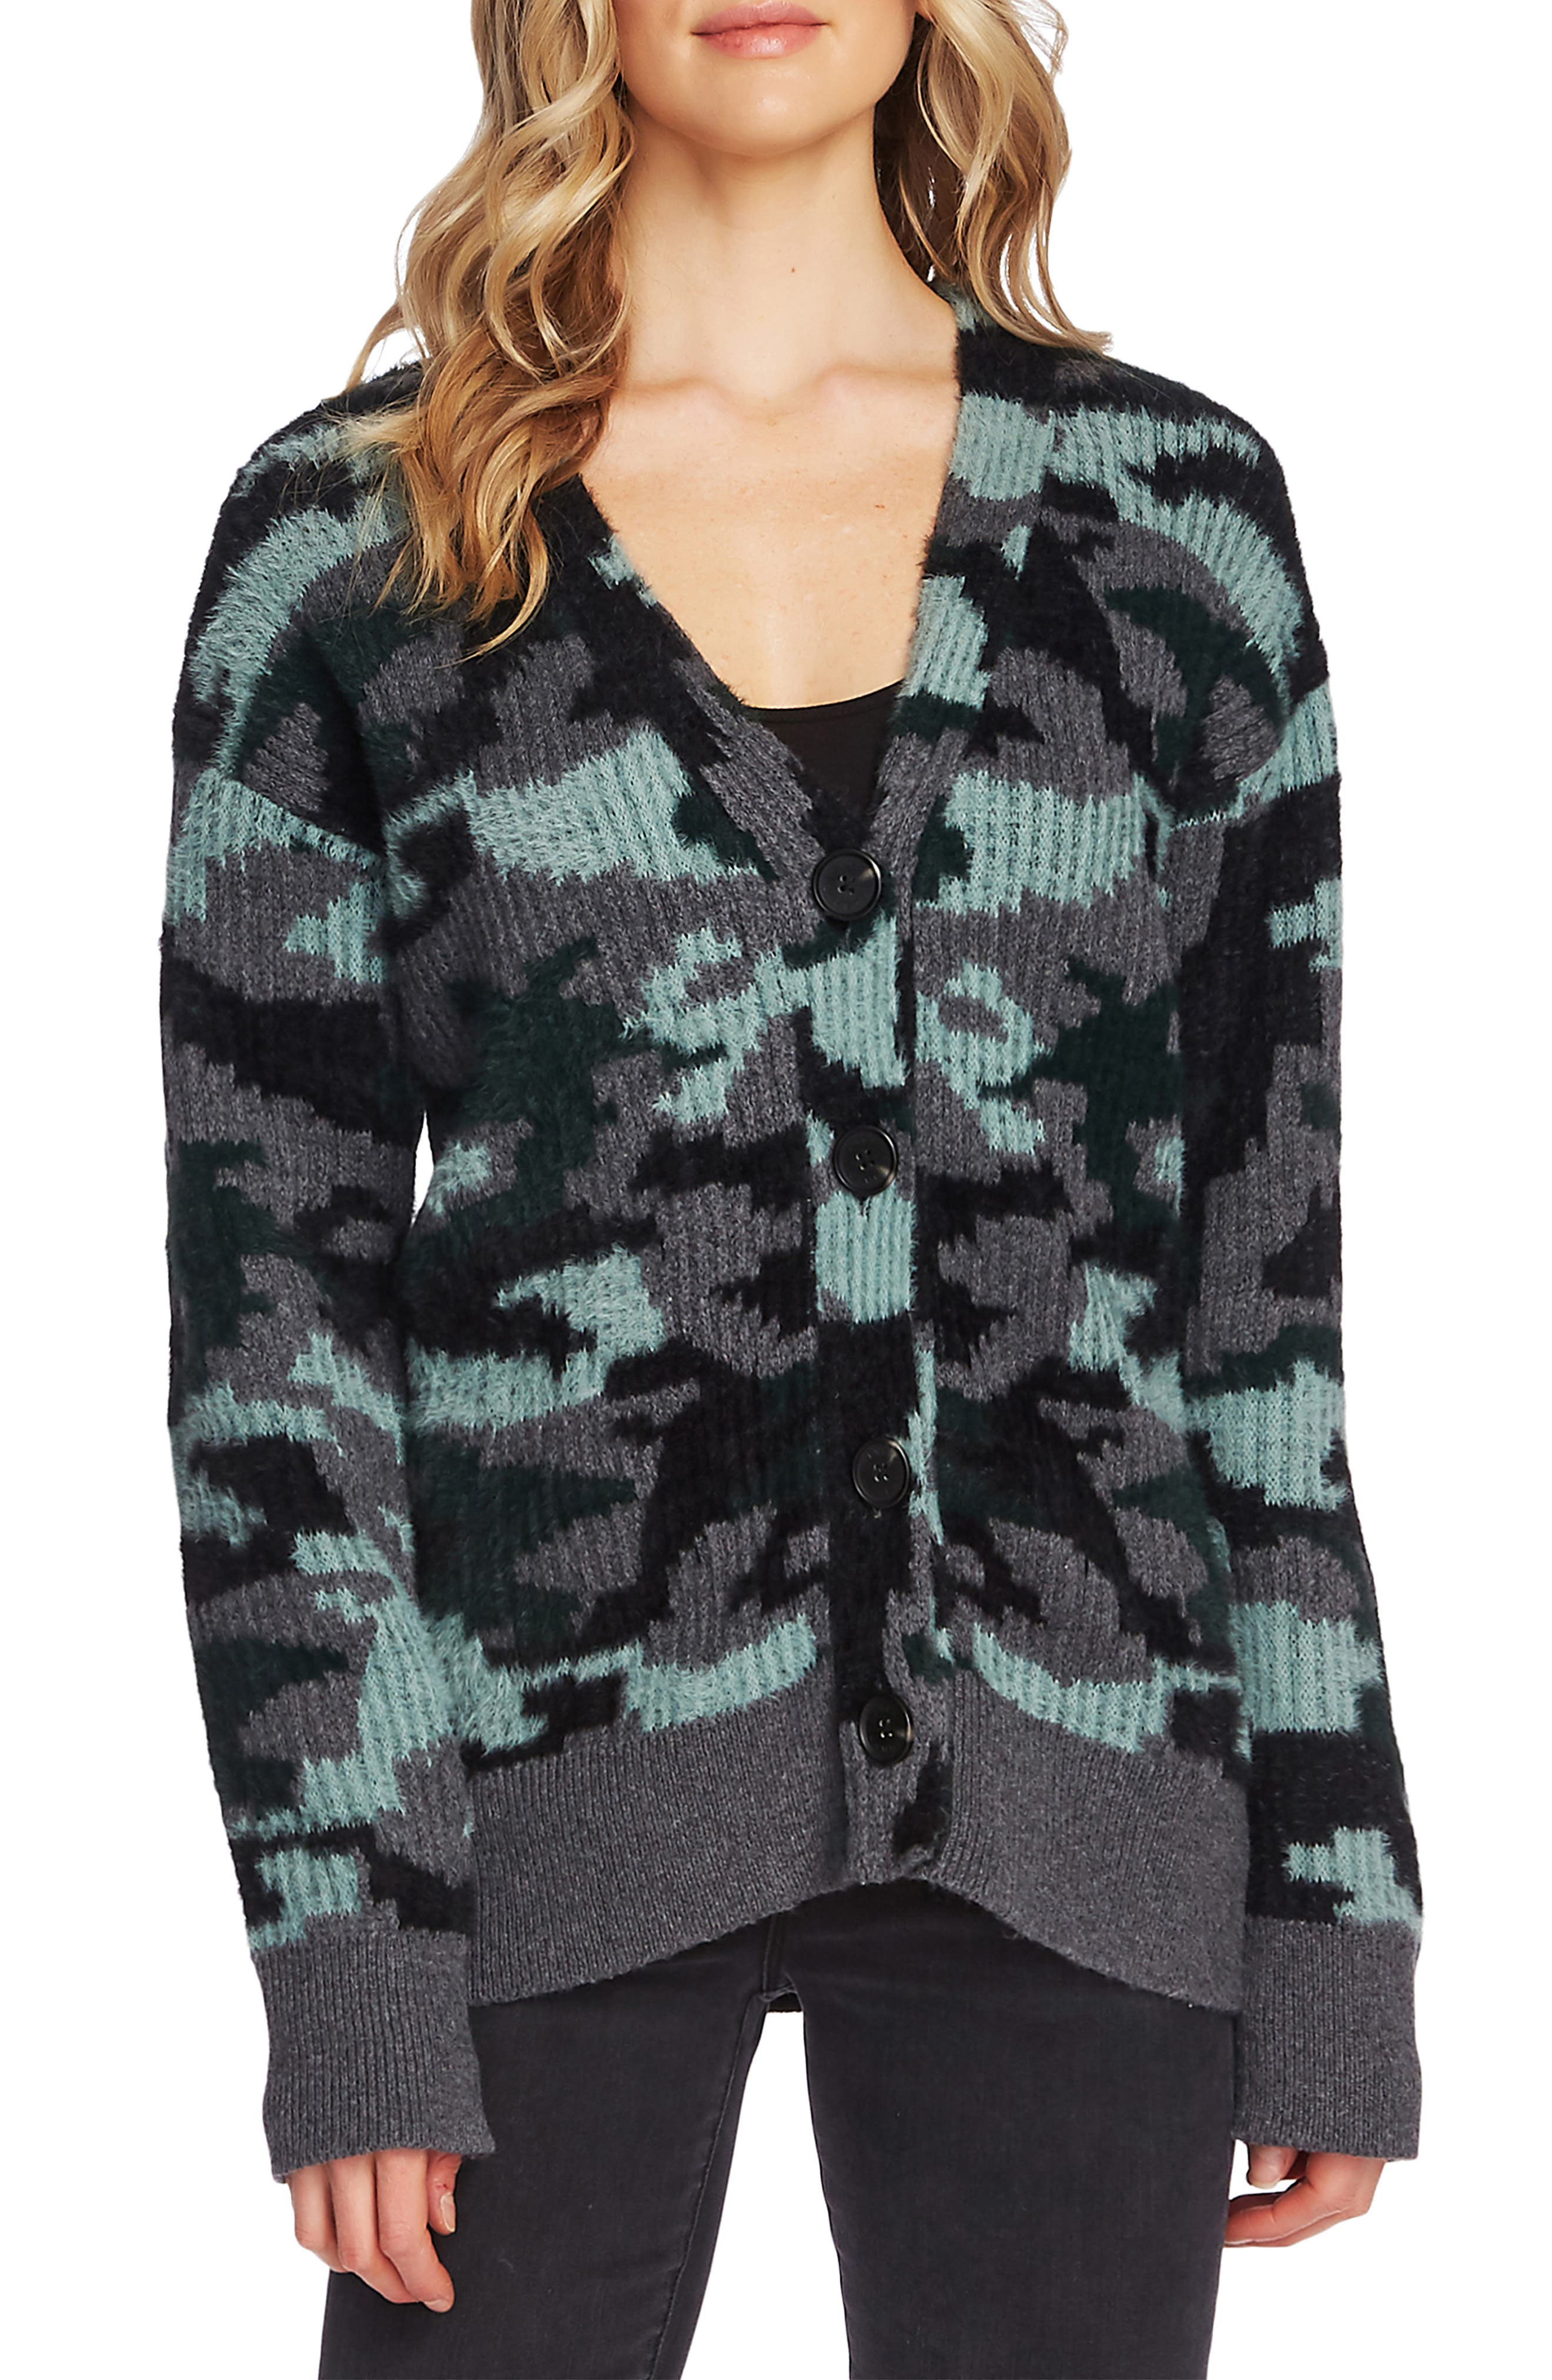 Vince Camuto Tops Camo Cardigan